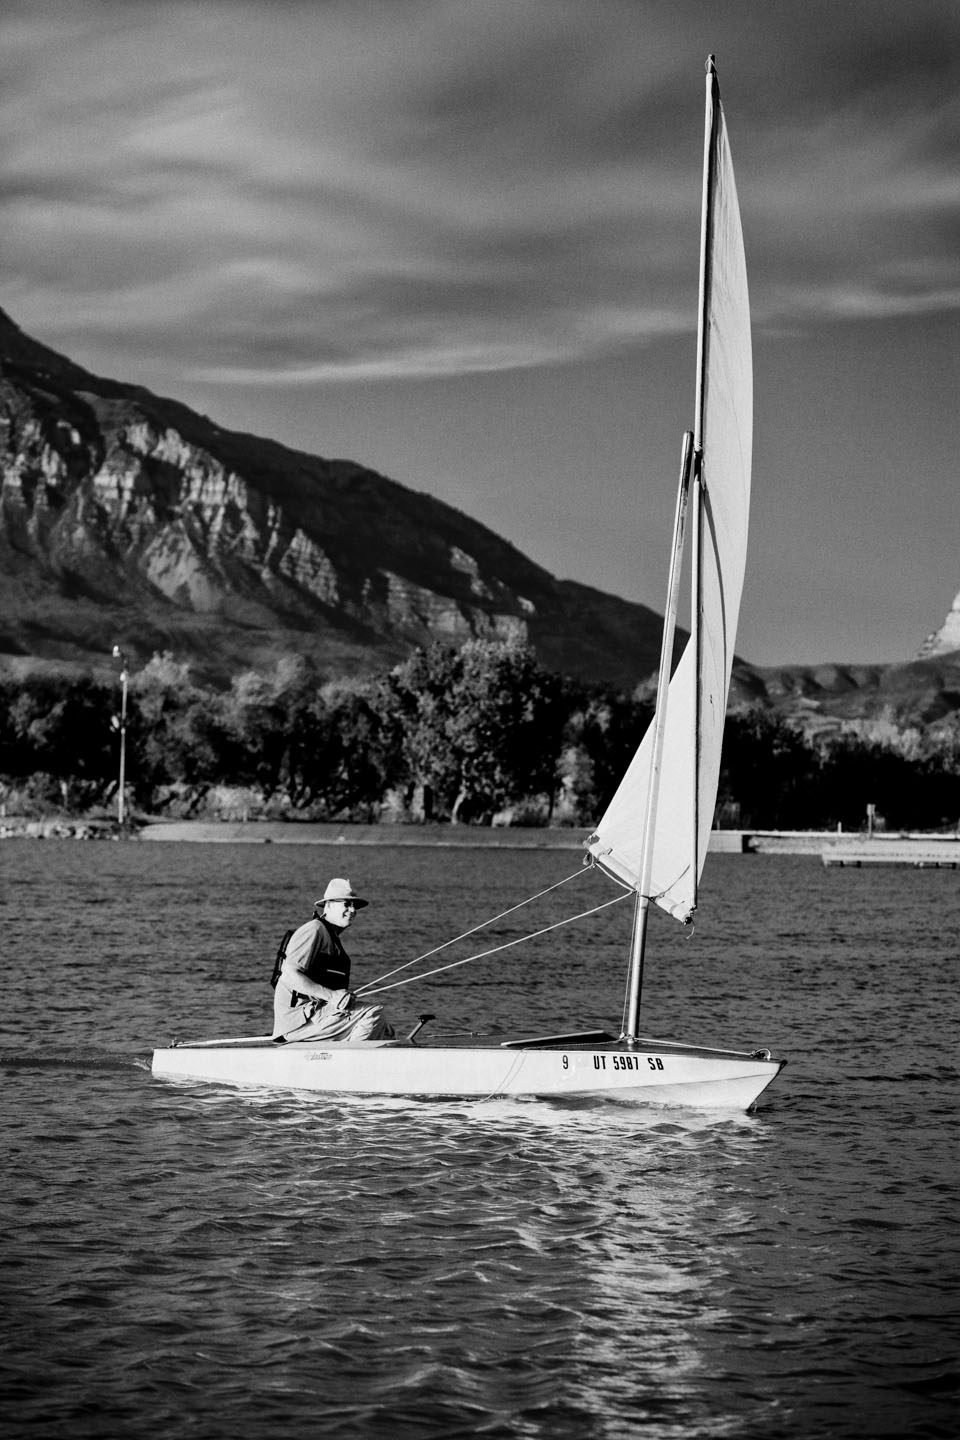 Sailing on the lake in black and white